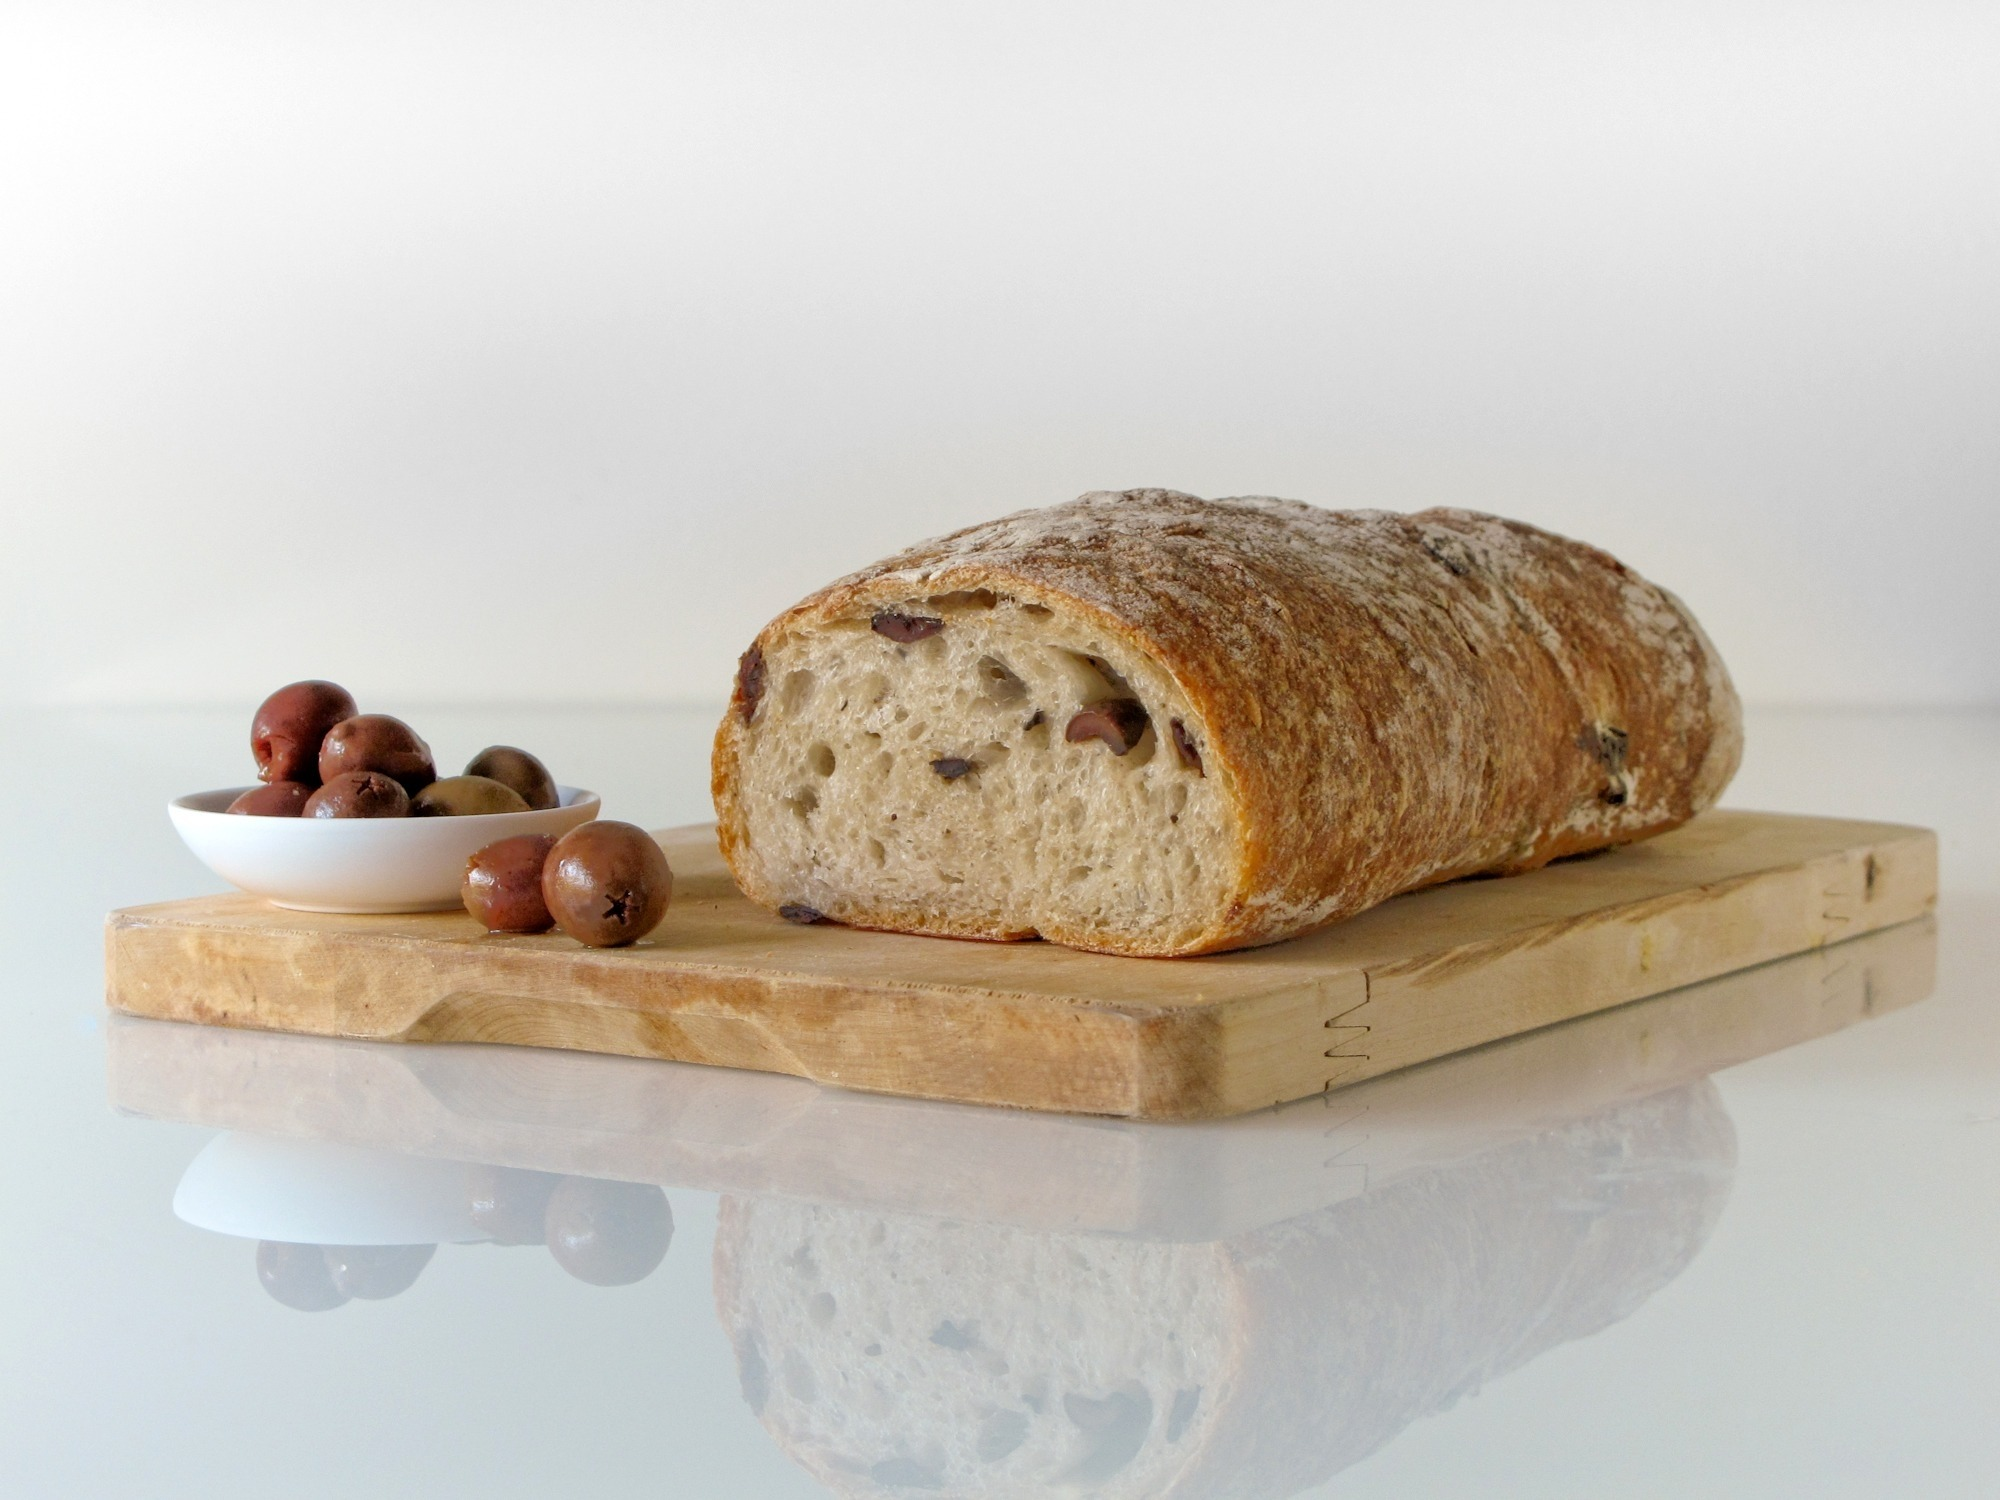 Load of bread on board with side of olives